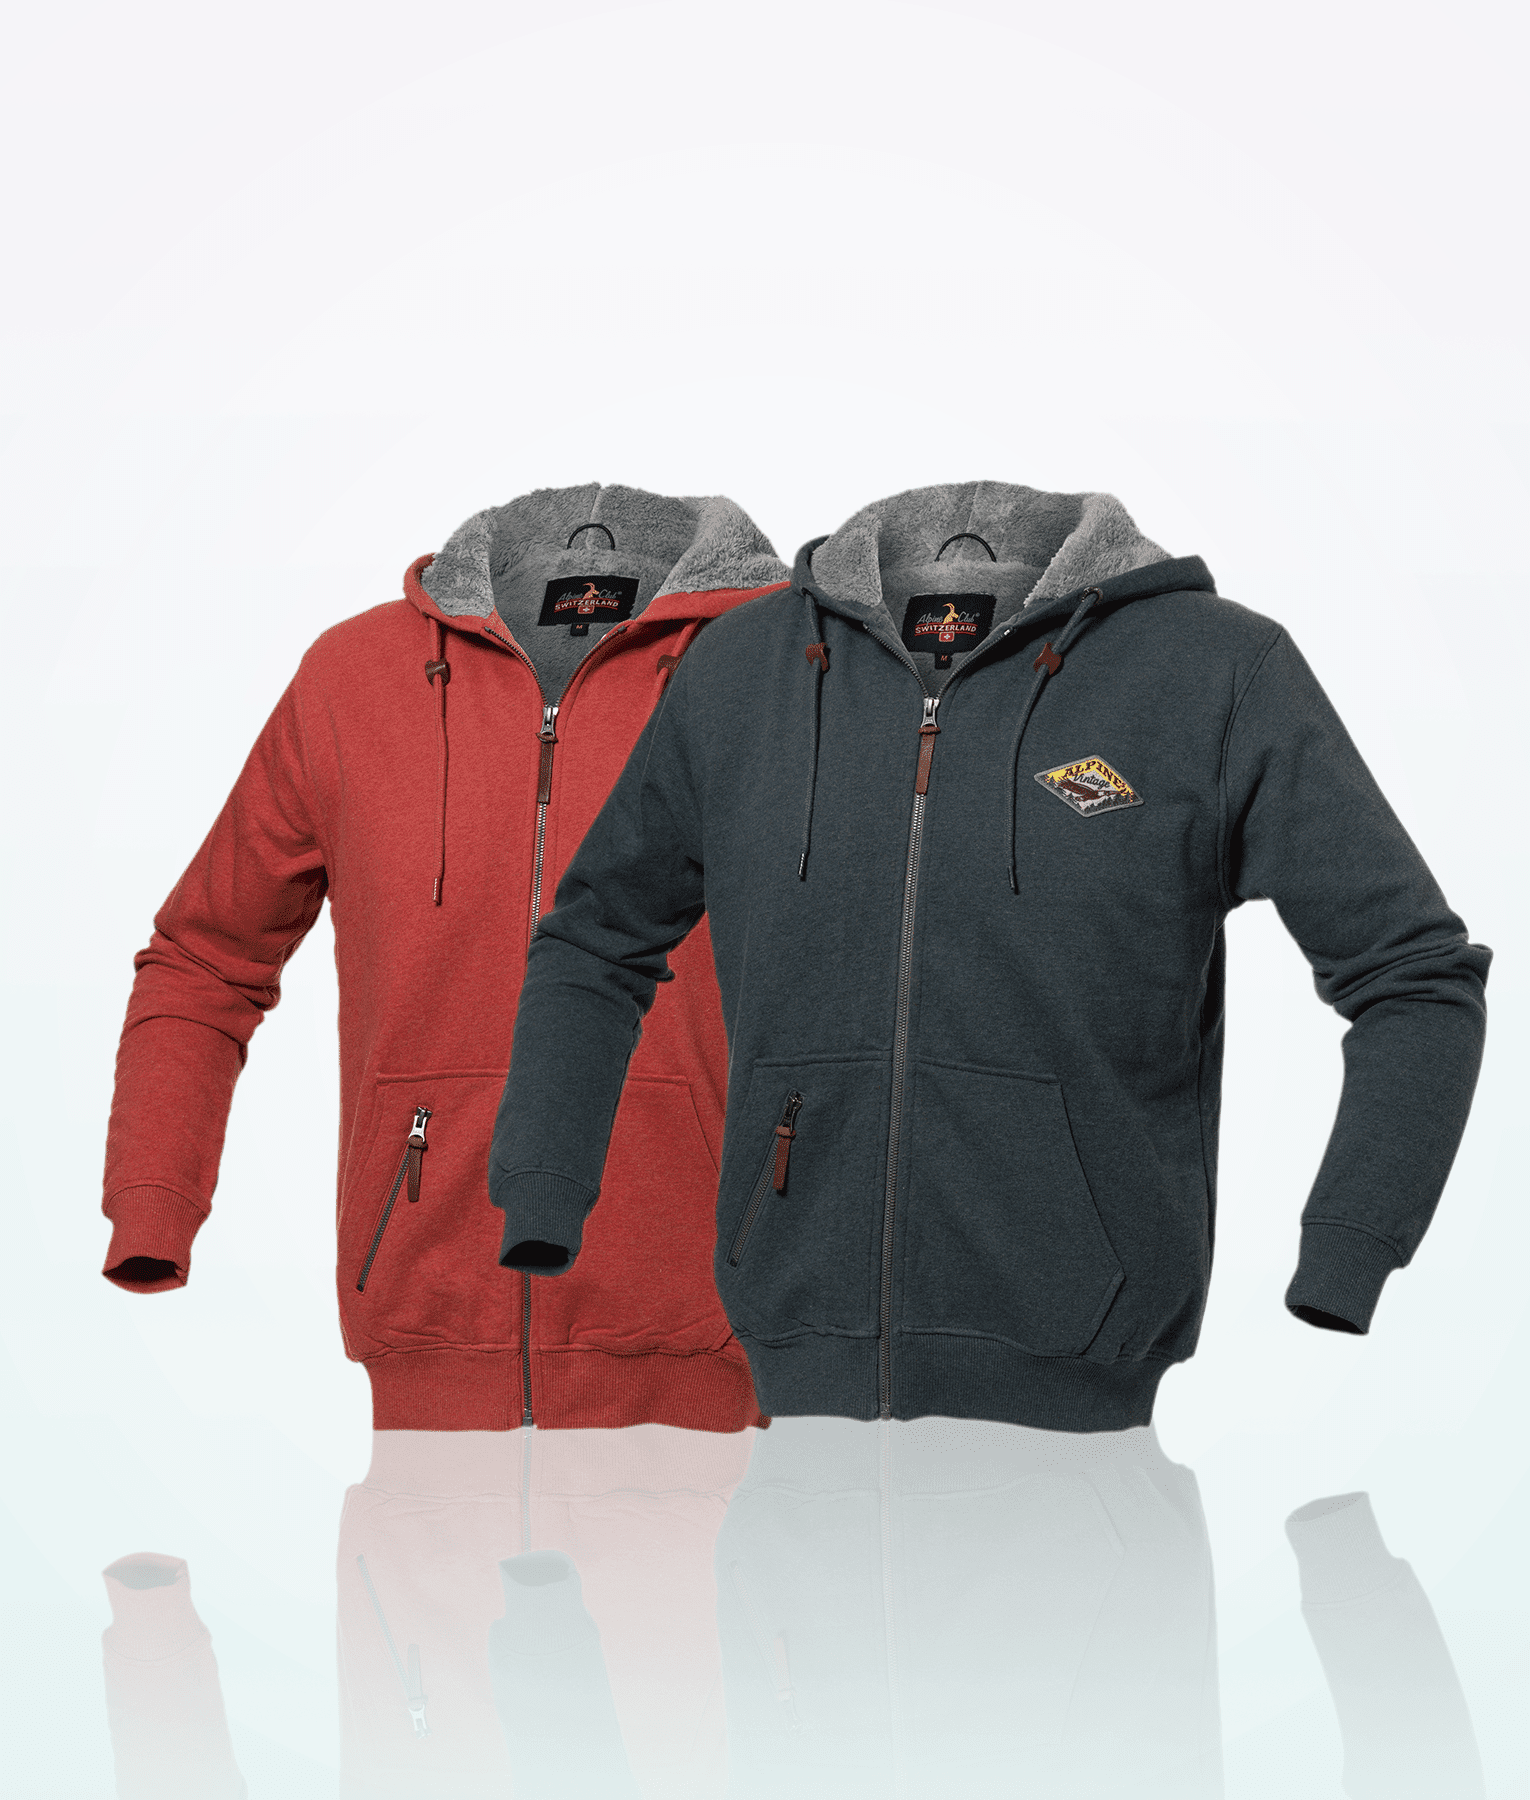 mens-hoody-lined-with-softleece